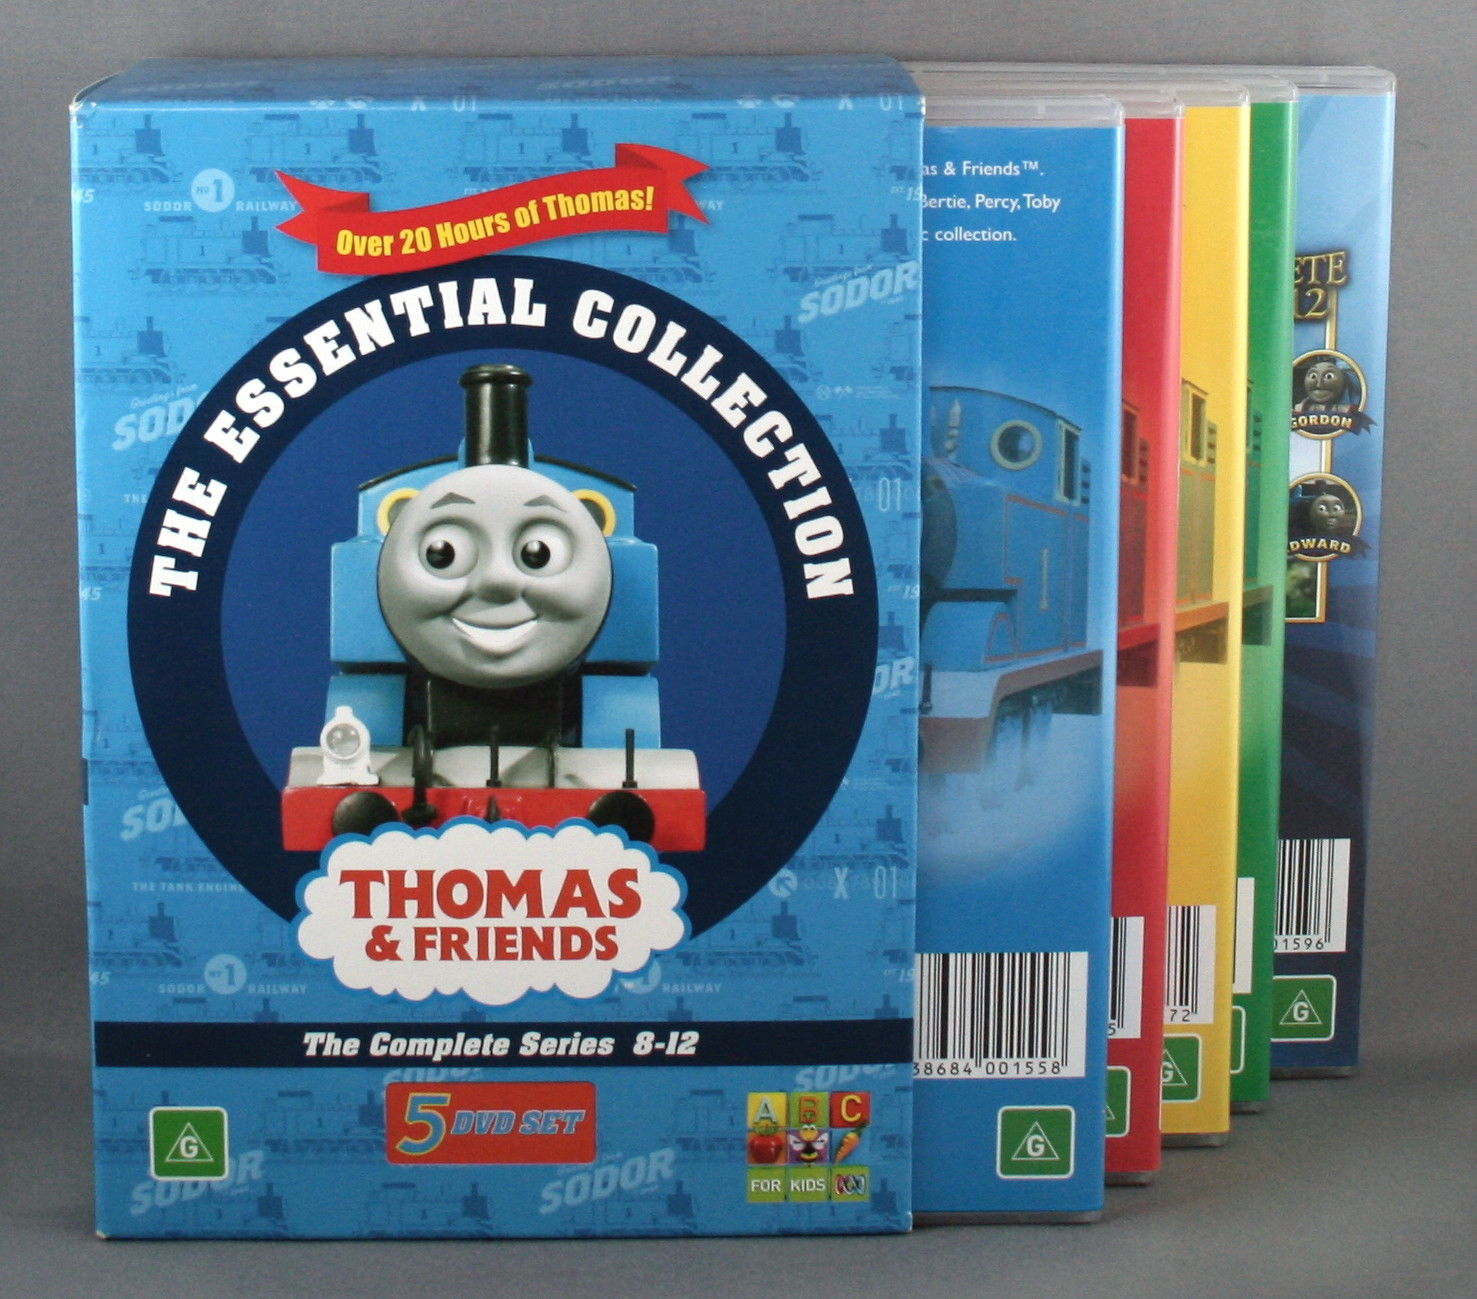 The Essential Collection (5 DVD Box Set)